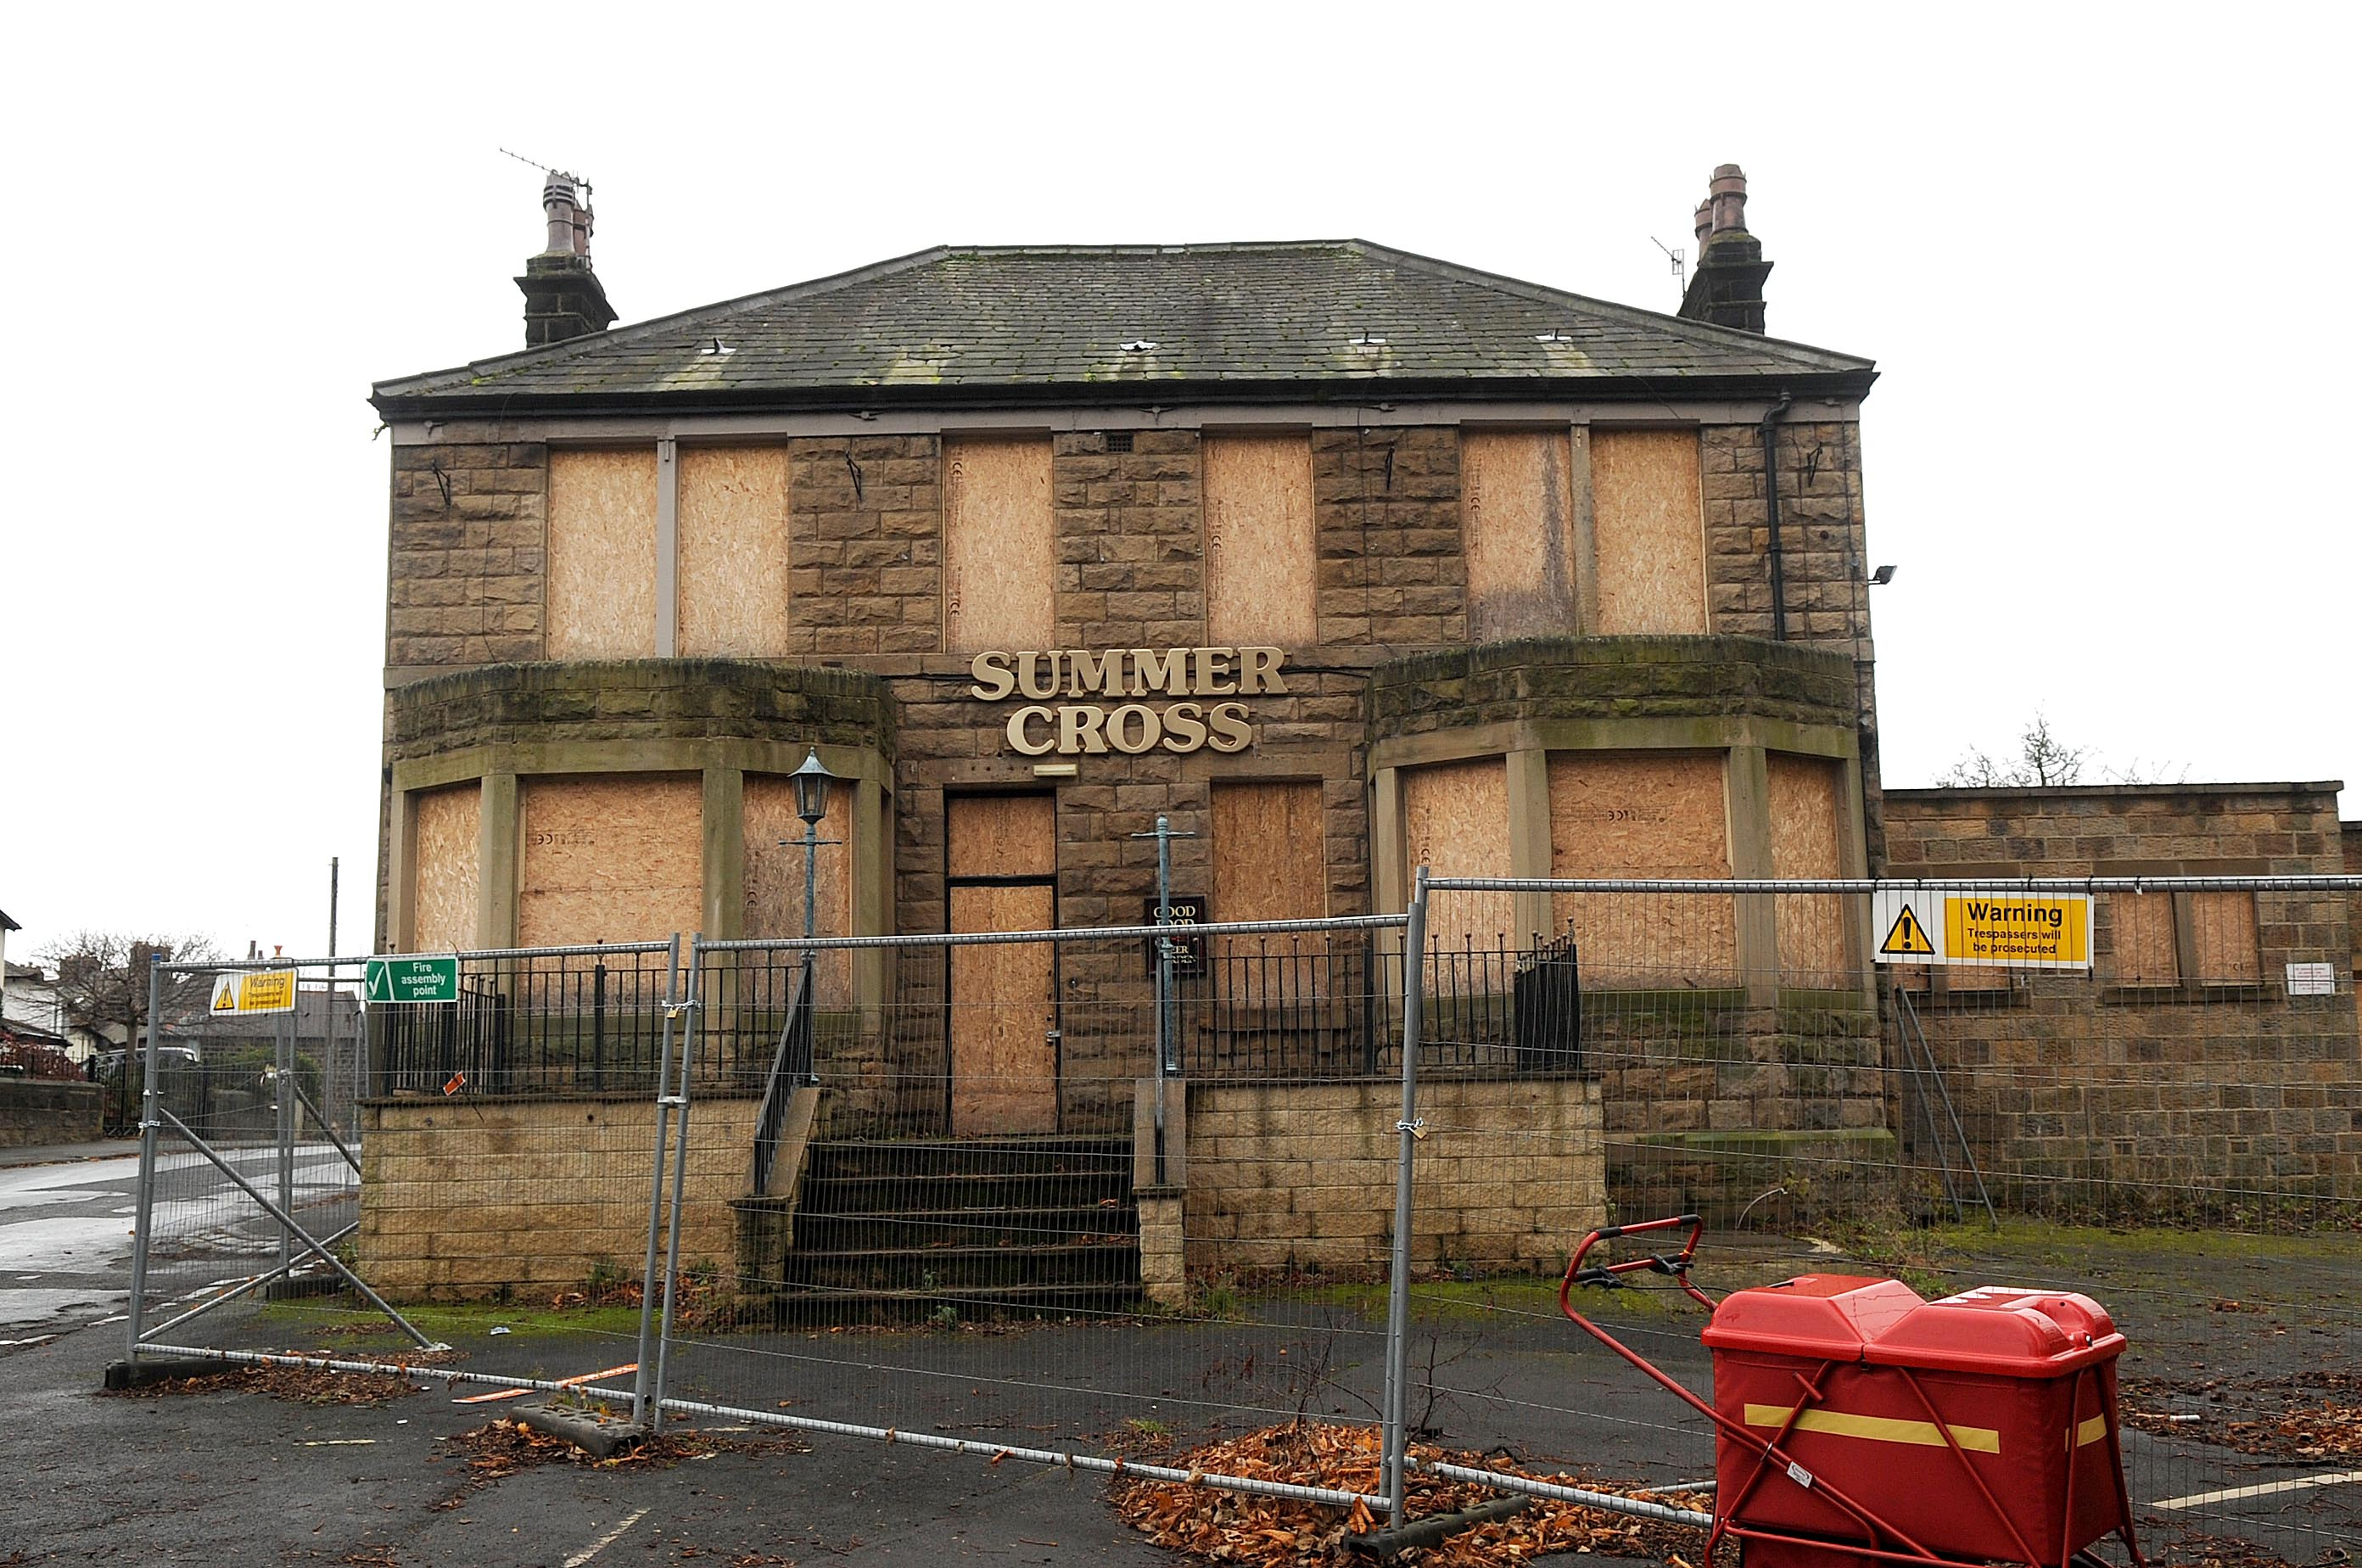 The former Summercross Pub in Otley